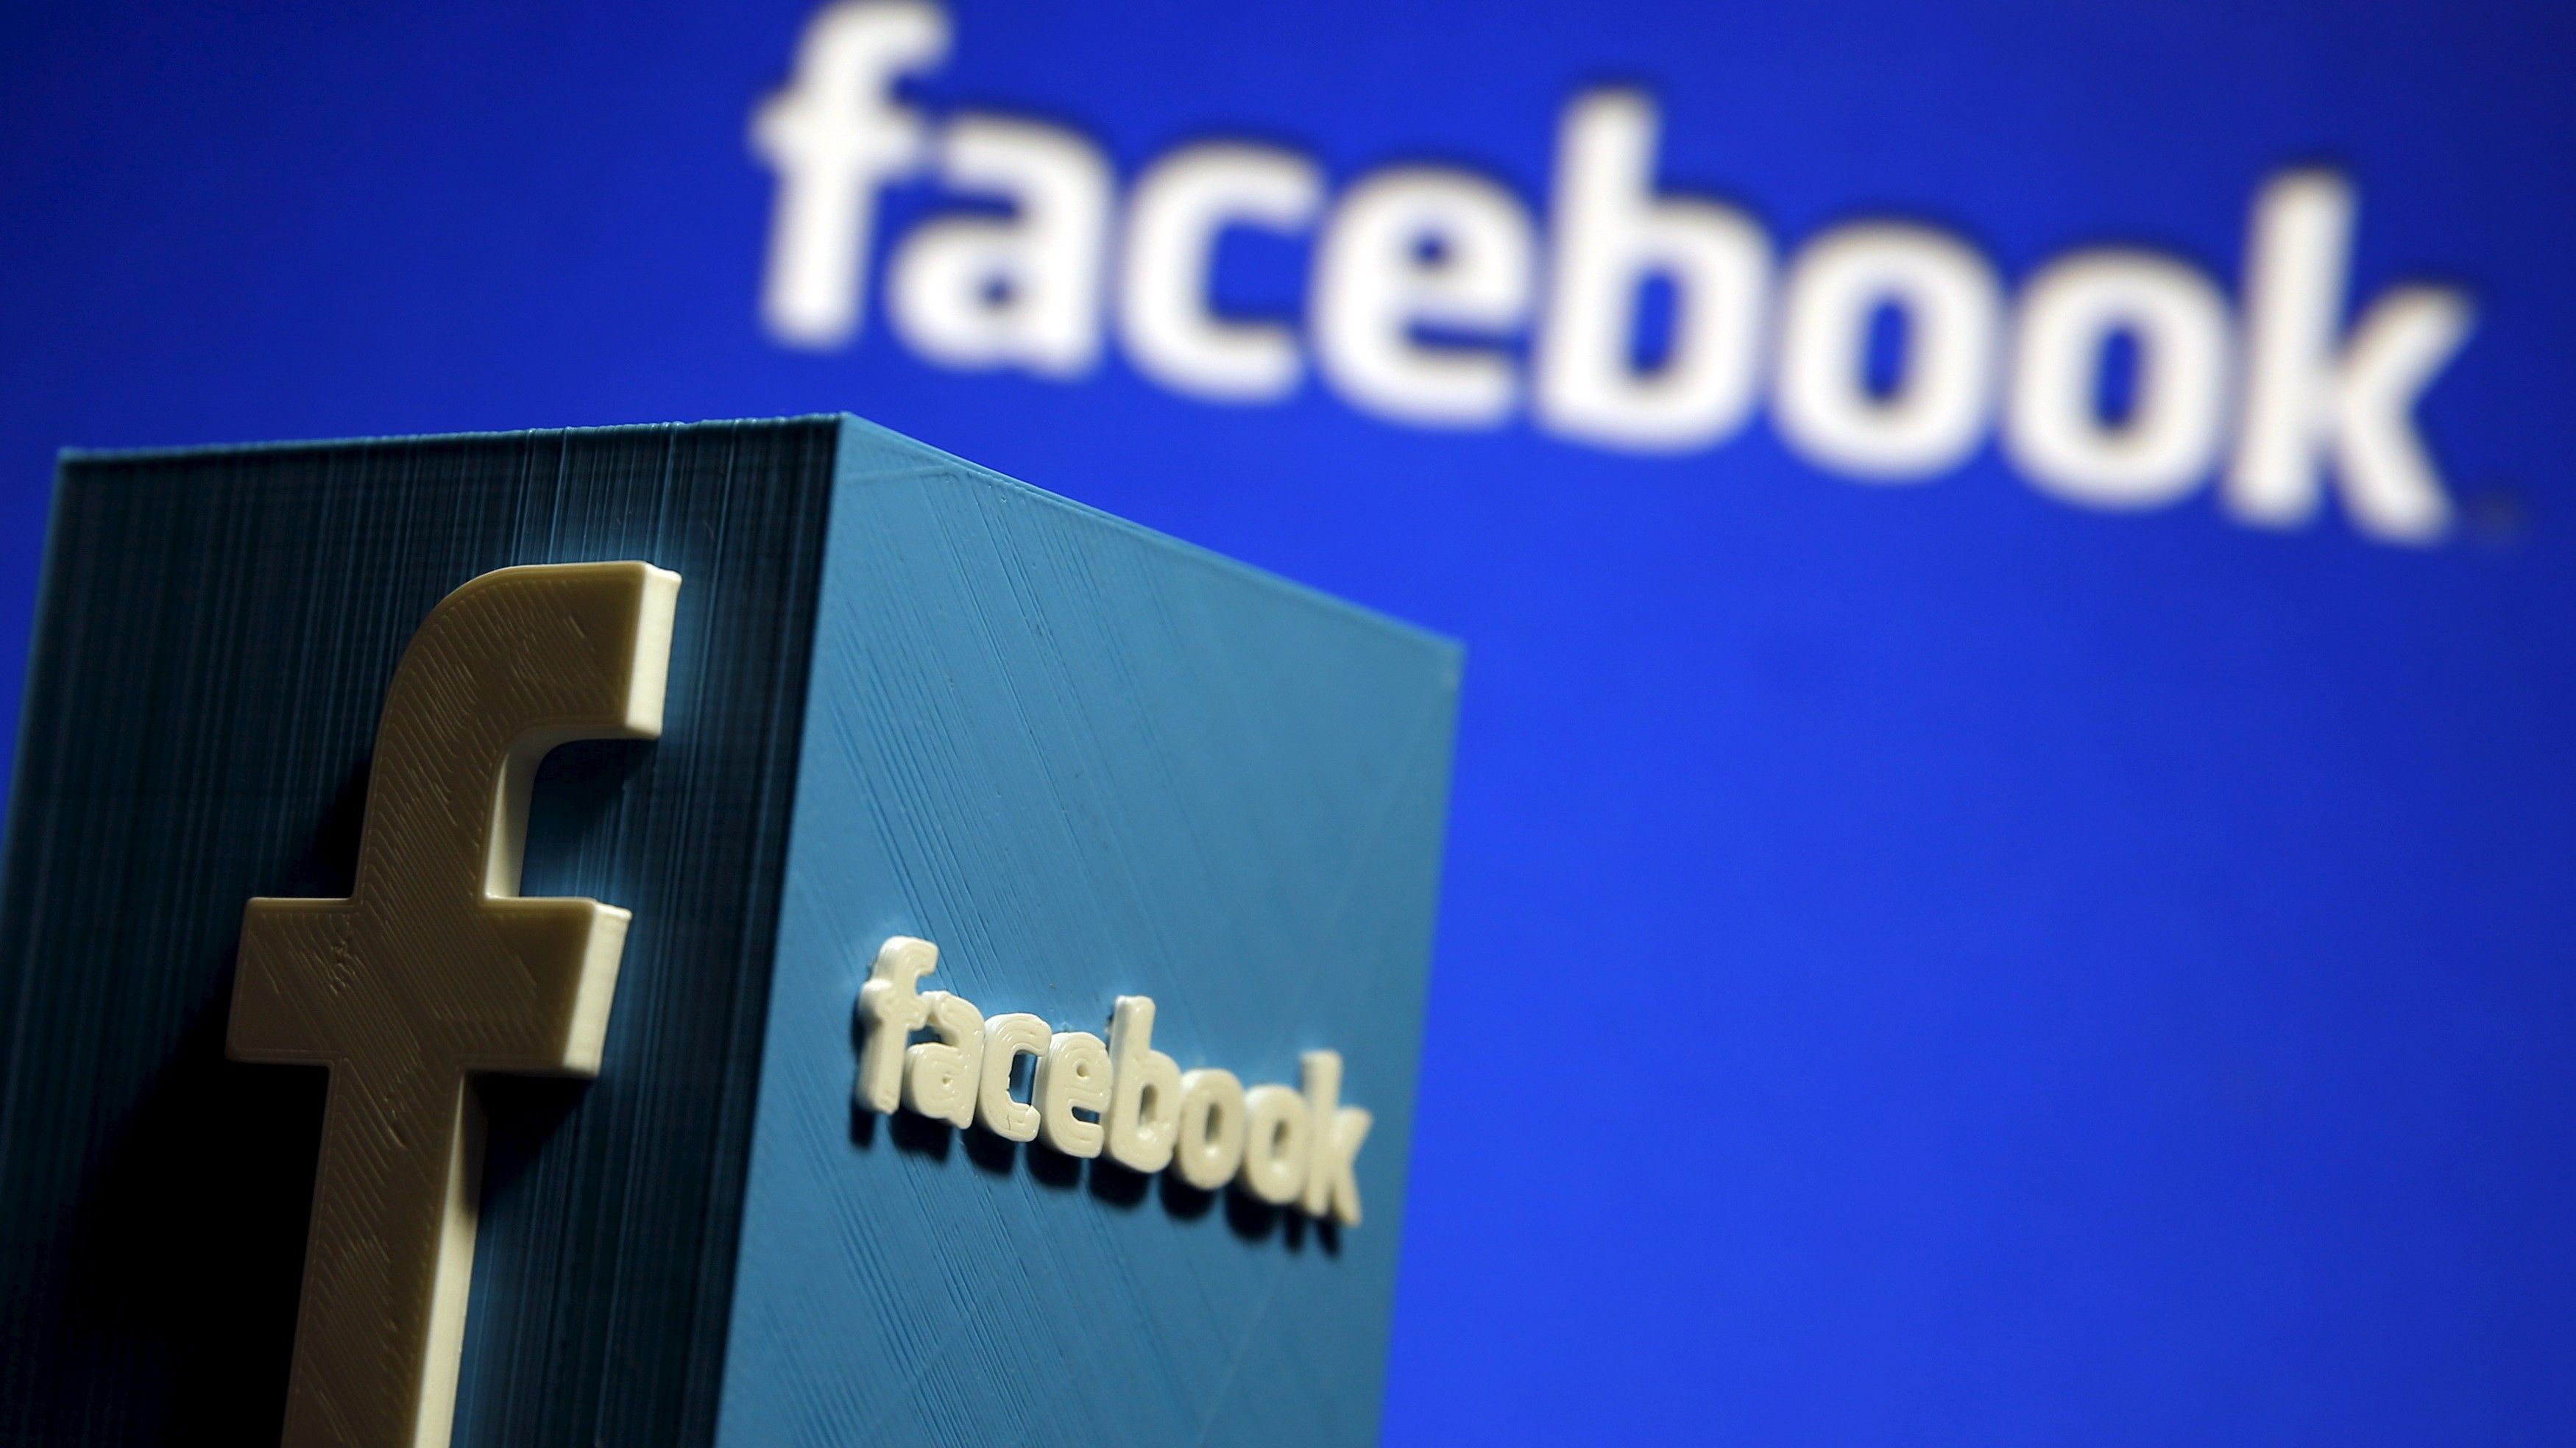 """A 3D plastic representation of the Facebook logo is seen in this illustration in Zenica, Bosnia and Herzegovina, May 13, 2015. Facebook announced deals with nine publishers -- including NBC News, the New York Times and BuzzFeed -- to deliver select articles """"instantly"""" on mobile apps. A next logical step for the social giant would be to extend the program to Internet-video providers. Under the Instant Articles program, Facebook caches content on its servers so that it loads up to 10 times faster than regular article posts, which take an average of eight seconds to access. The other launch partners in the program are National Geographic, The Atlantic, the U.K.'s Guardian, BBC News, Spiegel and Bild. REUTERS/Dado Ruvic  - RTX1CSWL"""